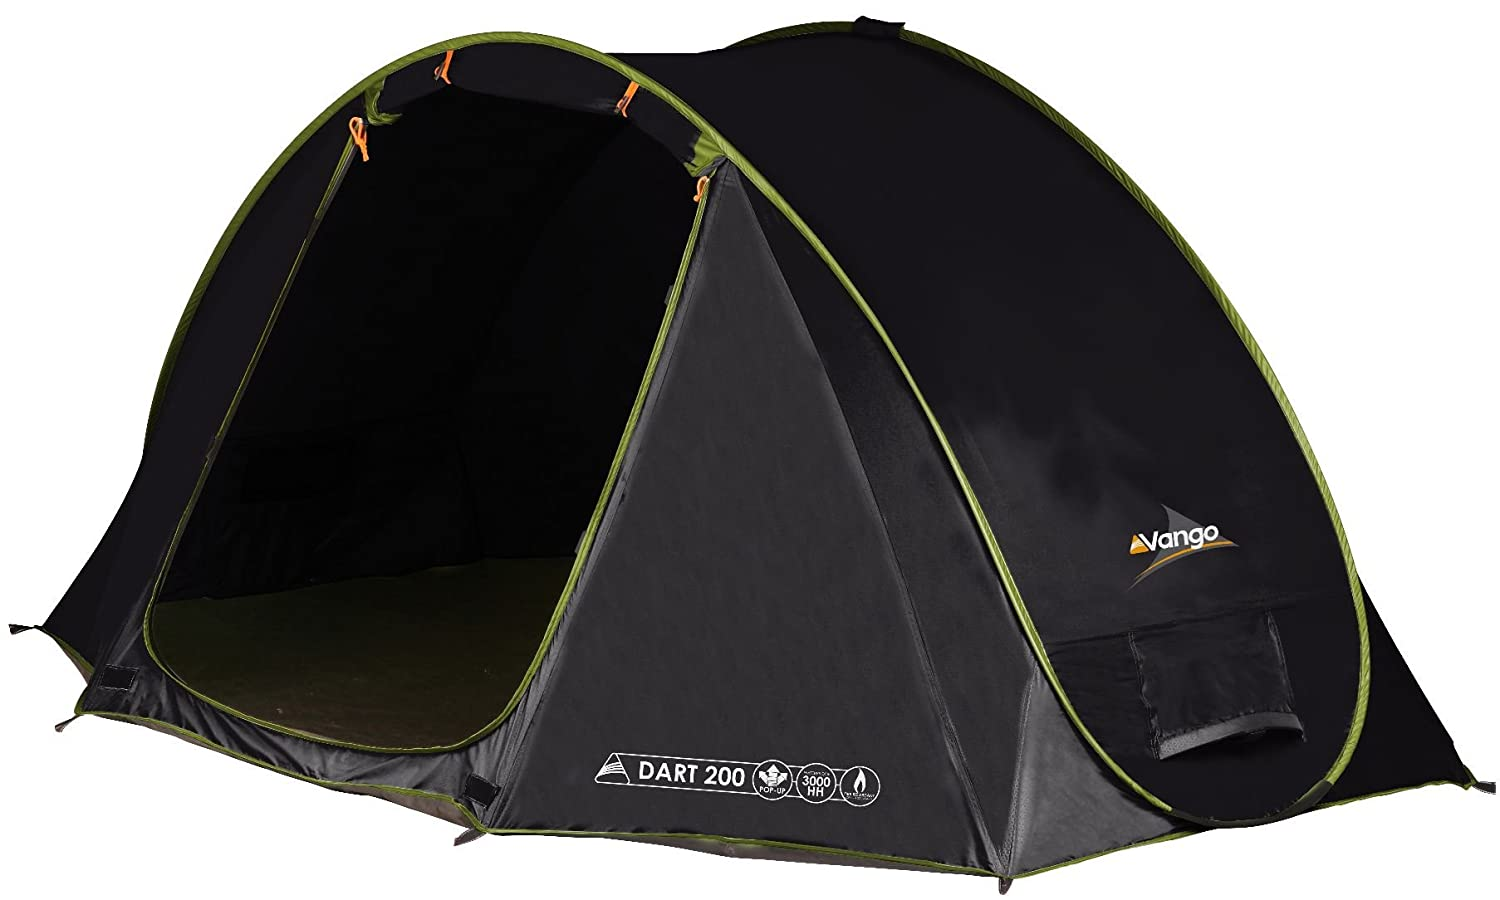 Vango Pop-Up Tent Dart 200 / 230 x 180 x 105 CM Black black / treetops Size230x180x105cm Amazon.co.uk Sports u0026 Outdoors  sc 1 st  Amazon UK & Vango Pop-Up Tent Dart 200 / 230 x 180 x 105 CM Black black ...